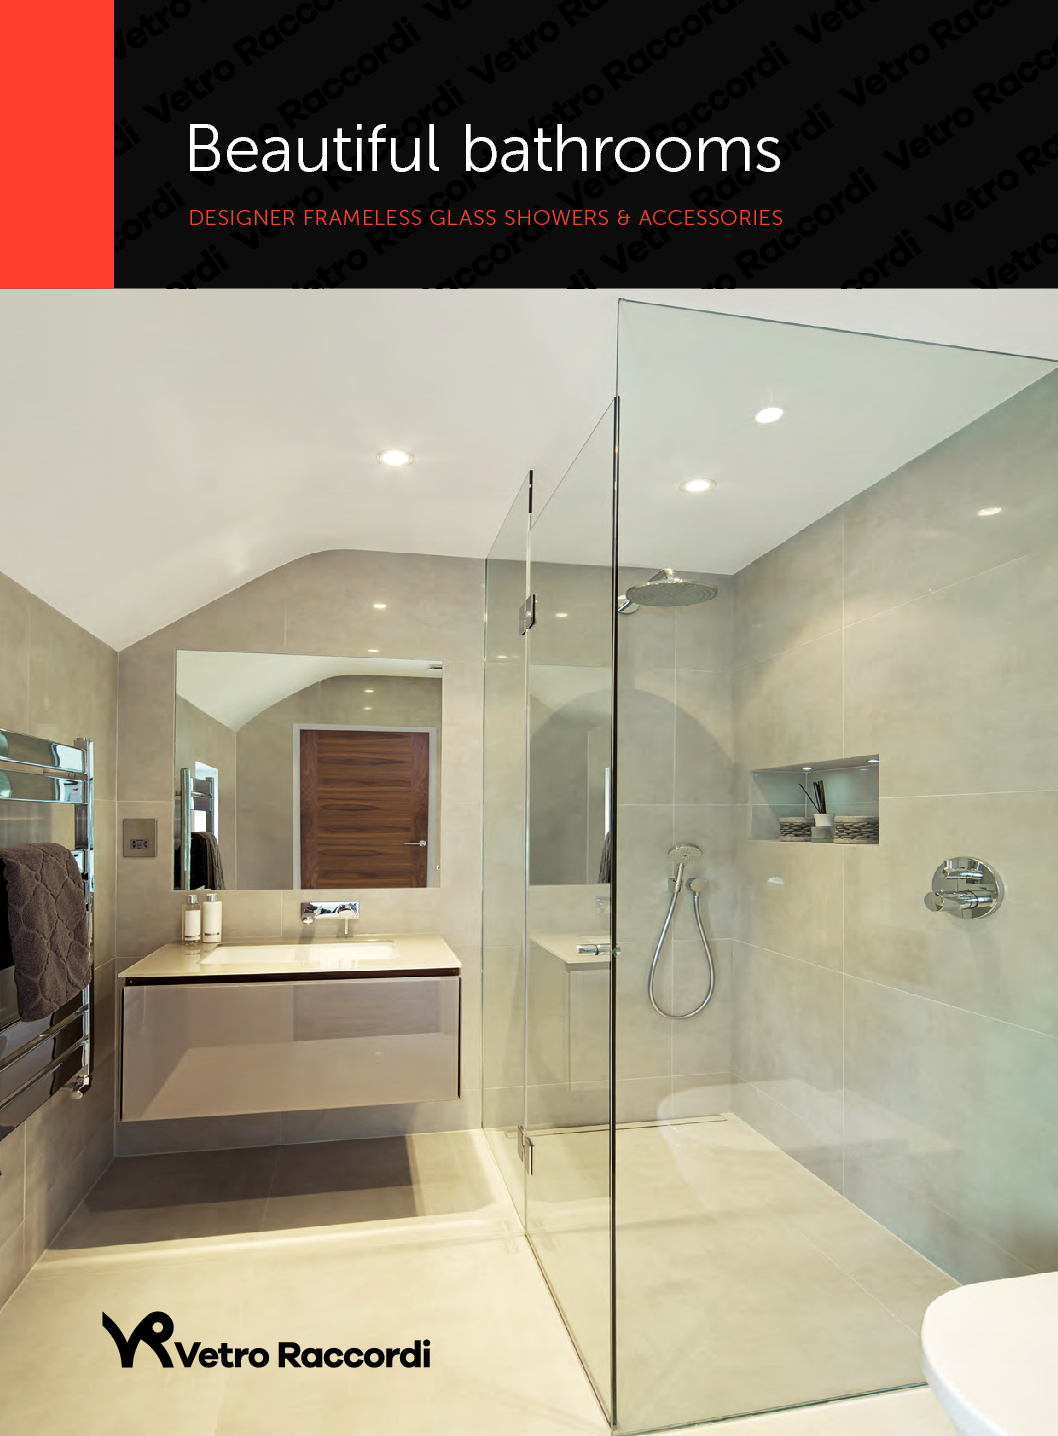 VR Beautiful Bathrooms brochure